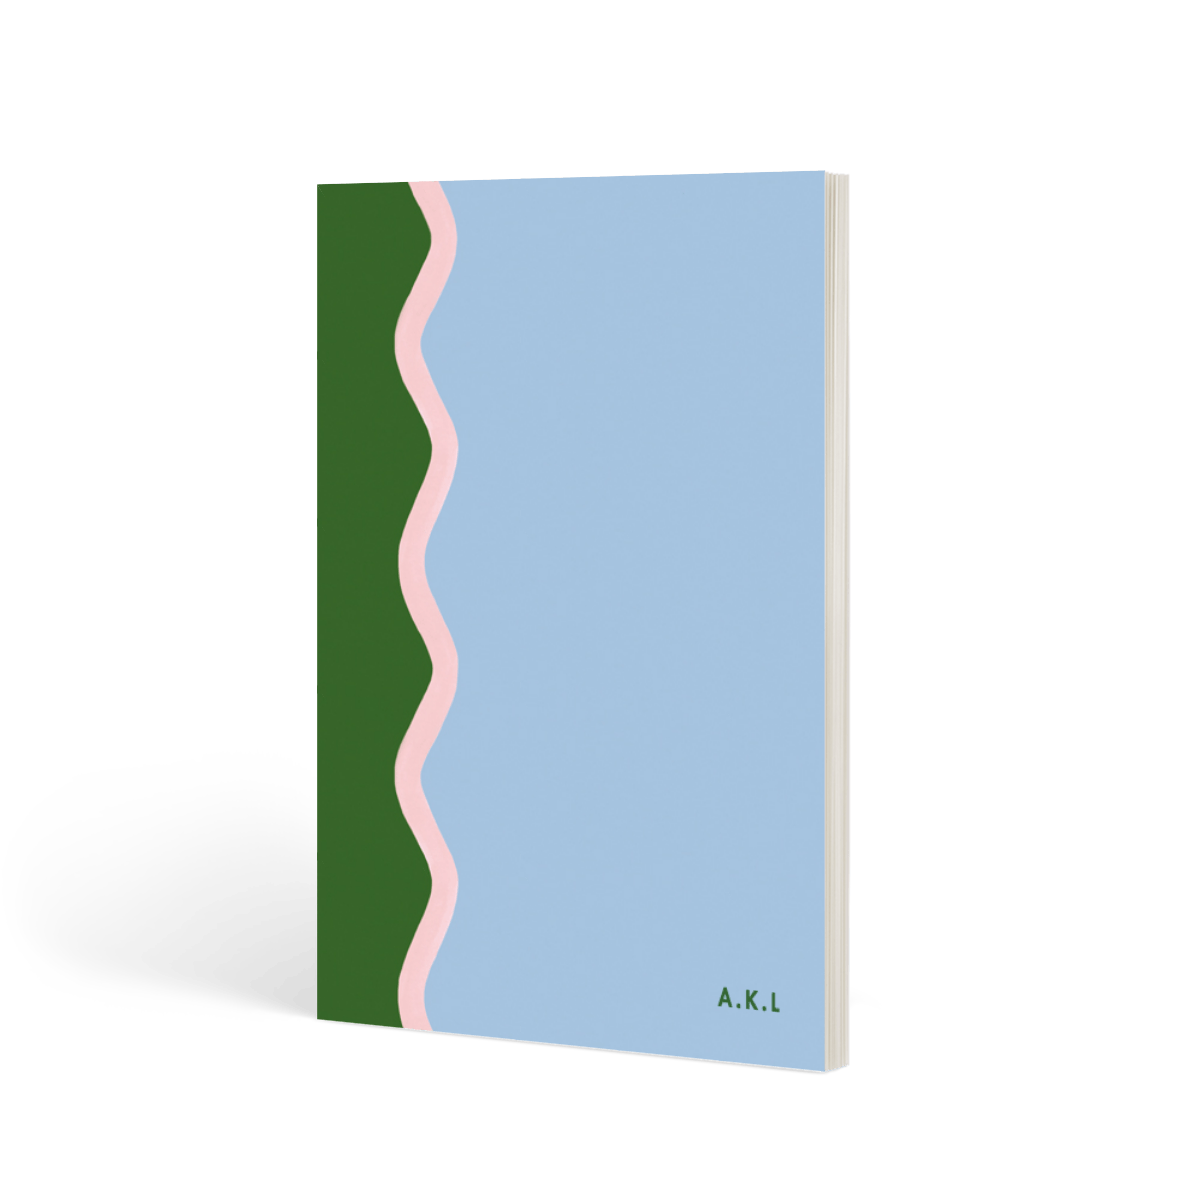 Https%3a%2f%2fwww.papier.com%2fproduct image%2f75323%2f6%2fscallop spine 17652 front 1558007079.png?ixlib=rb 1.1